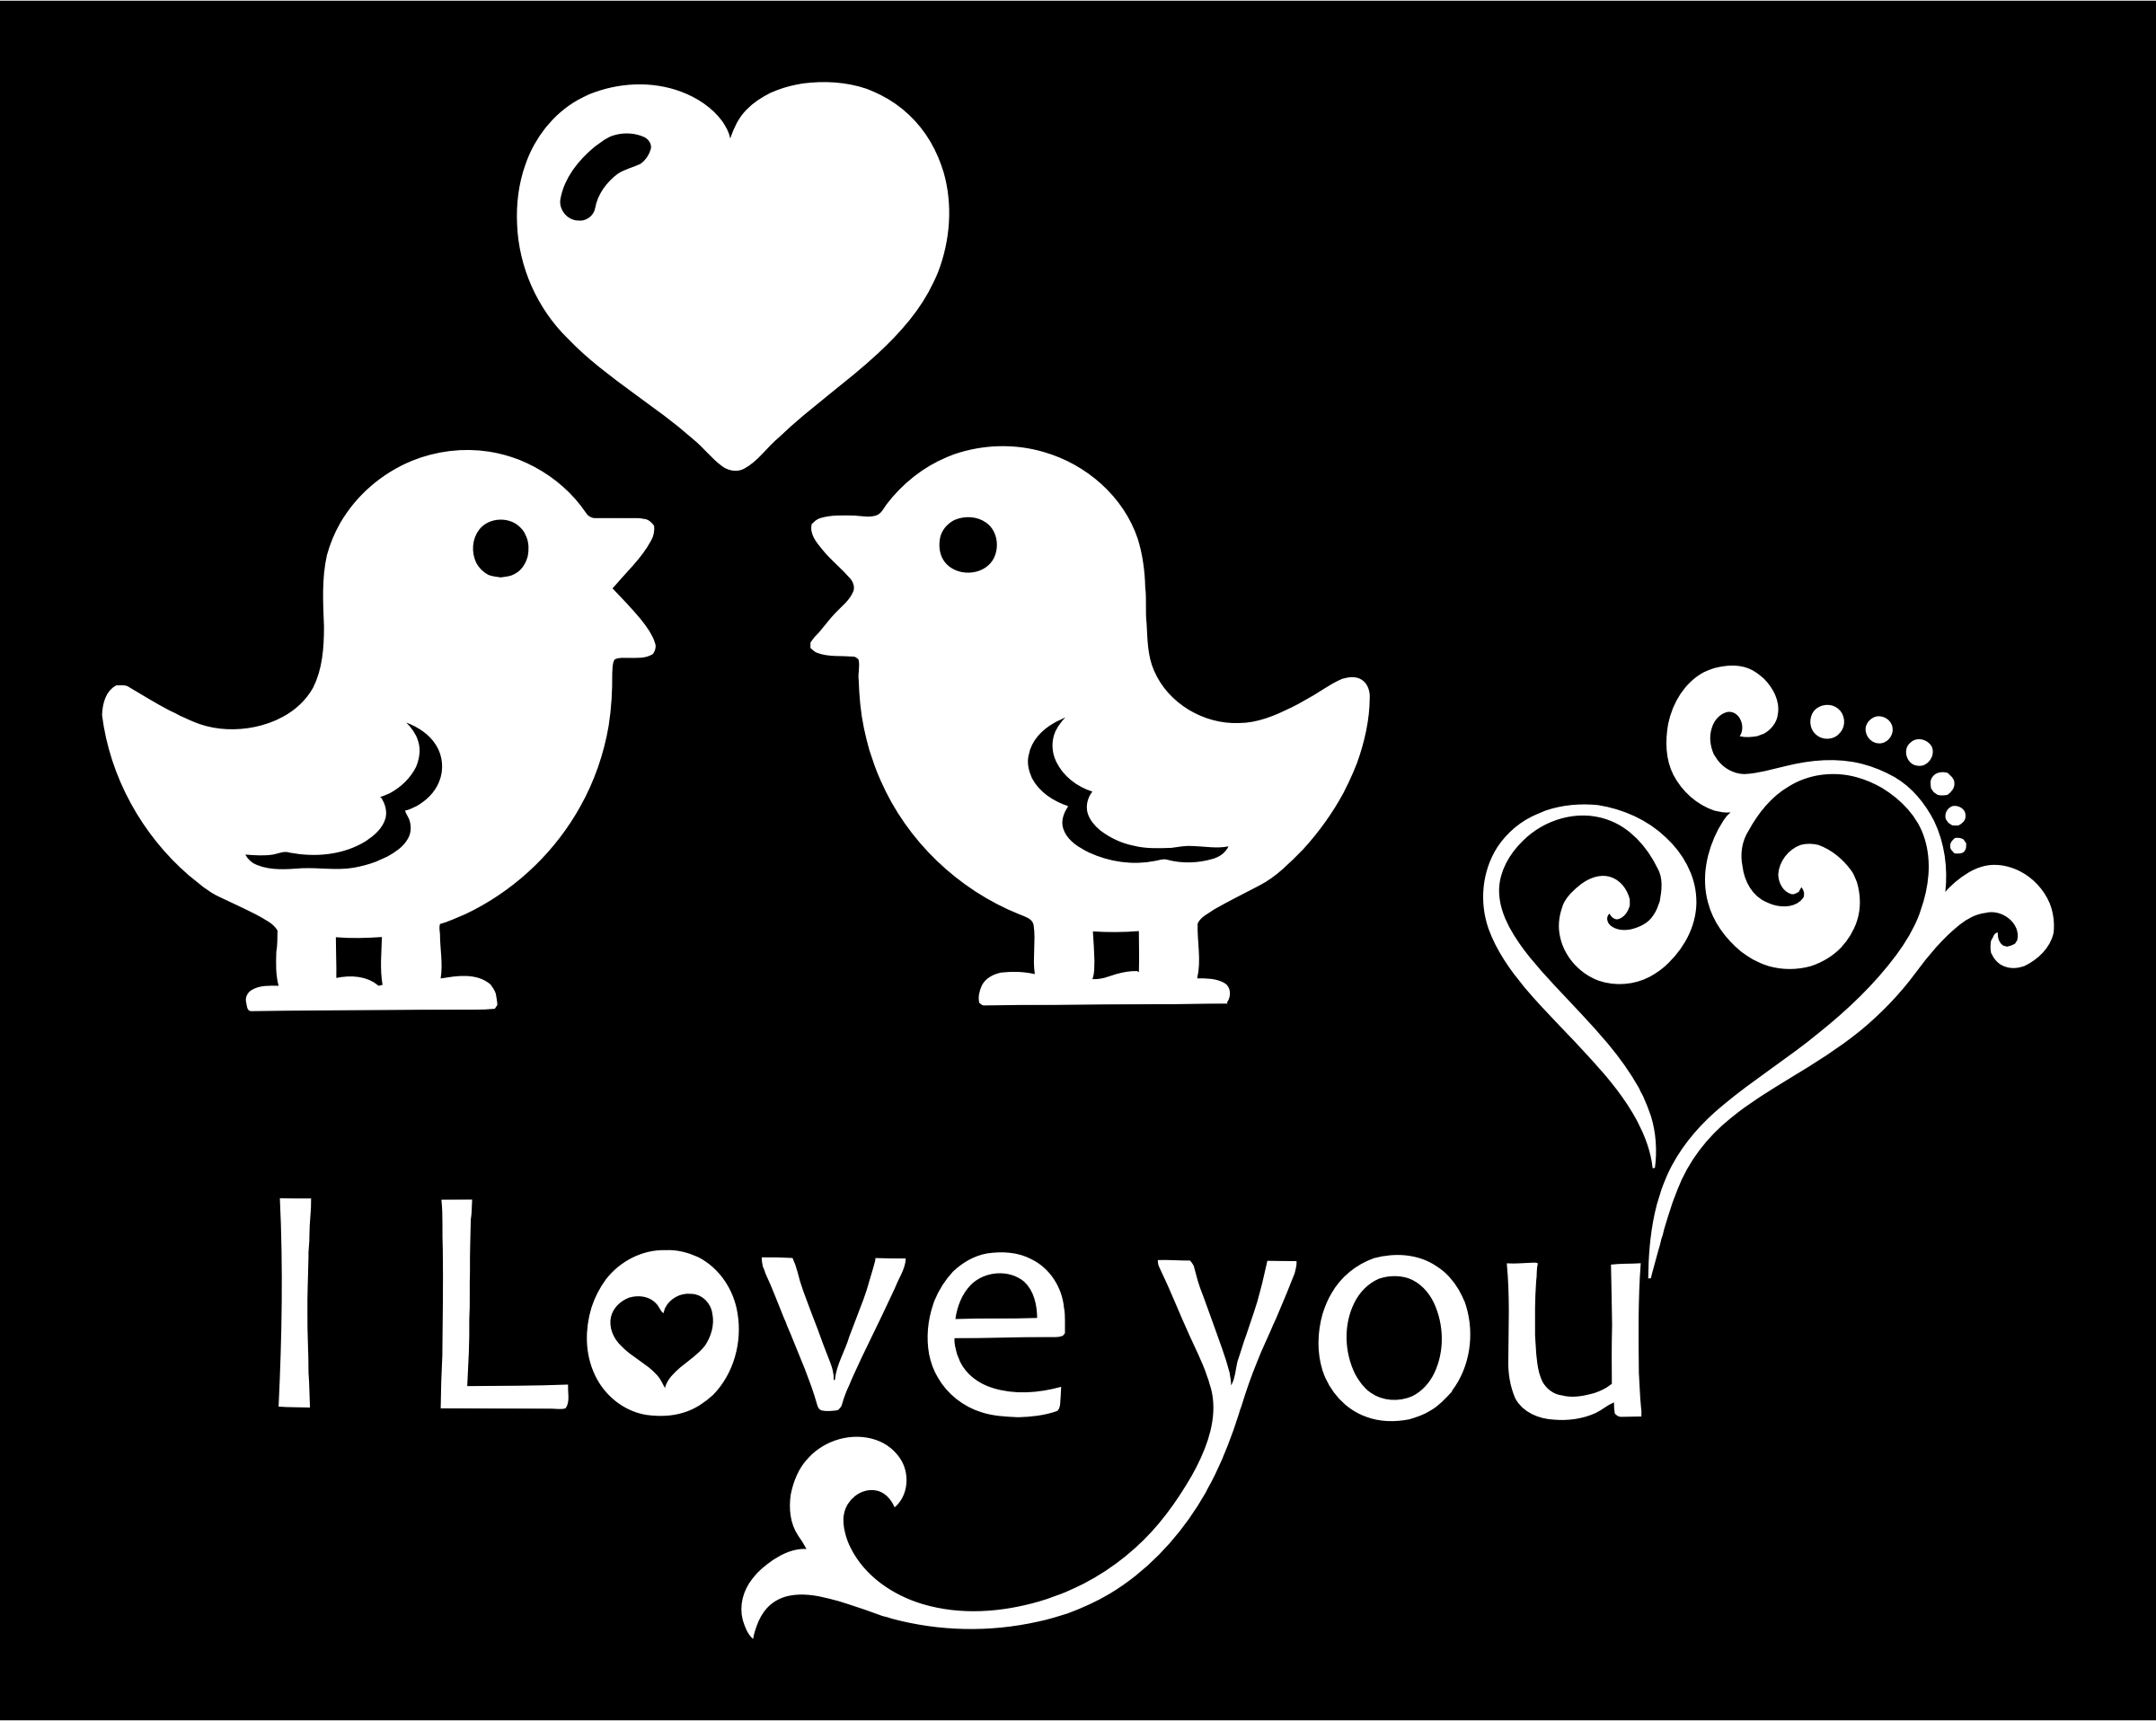 I Love You Typography Black And White by GDJ